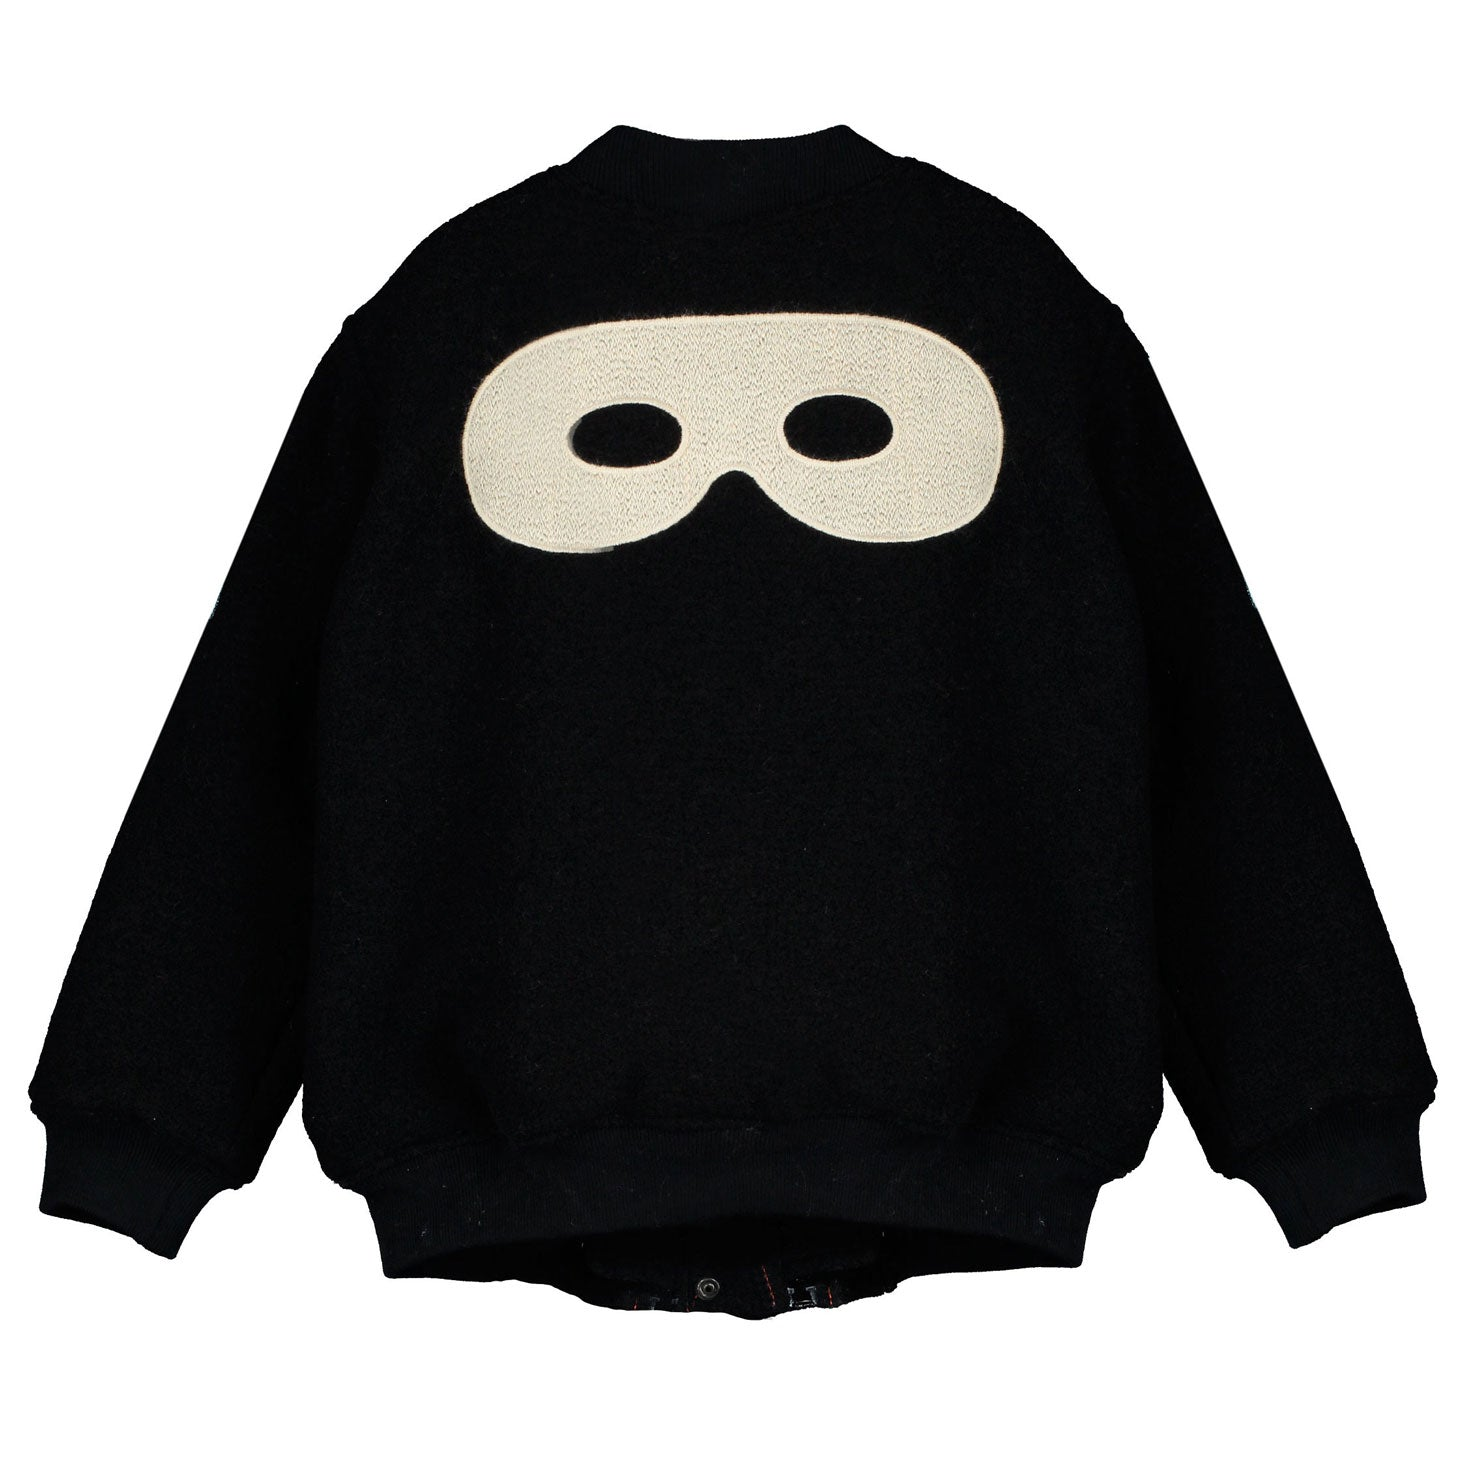 Beau Loves Black Hero Mask Bomber Wool Jacket